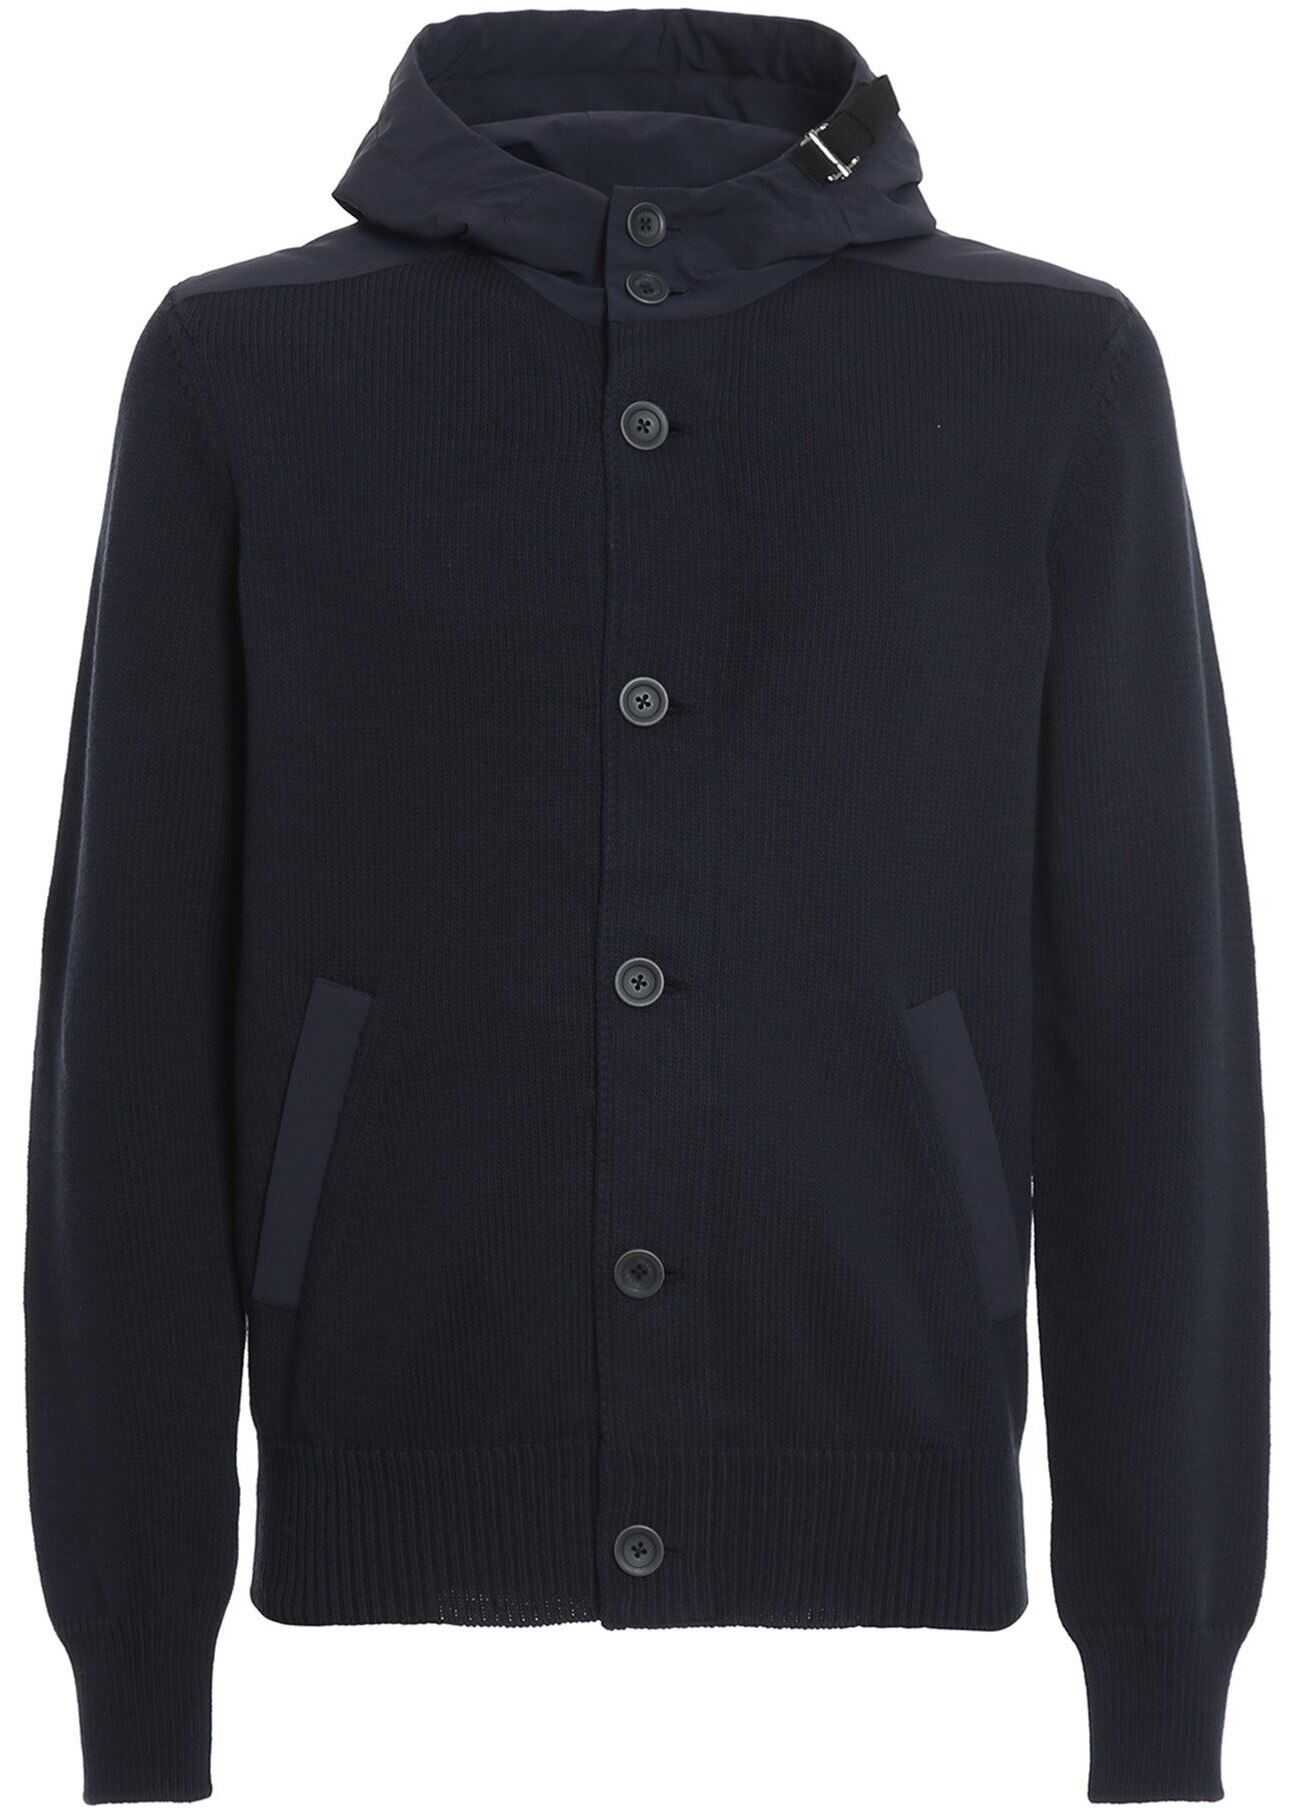 Herno Knitted Jacket In Blue Blue imagine